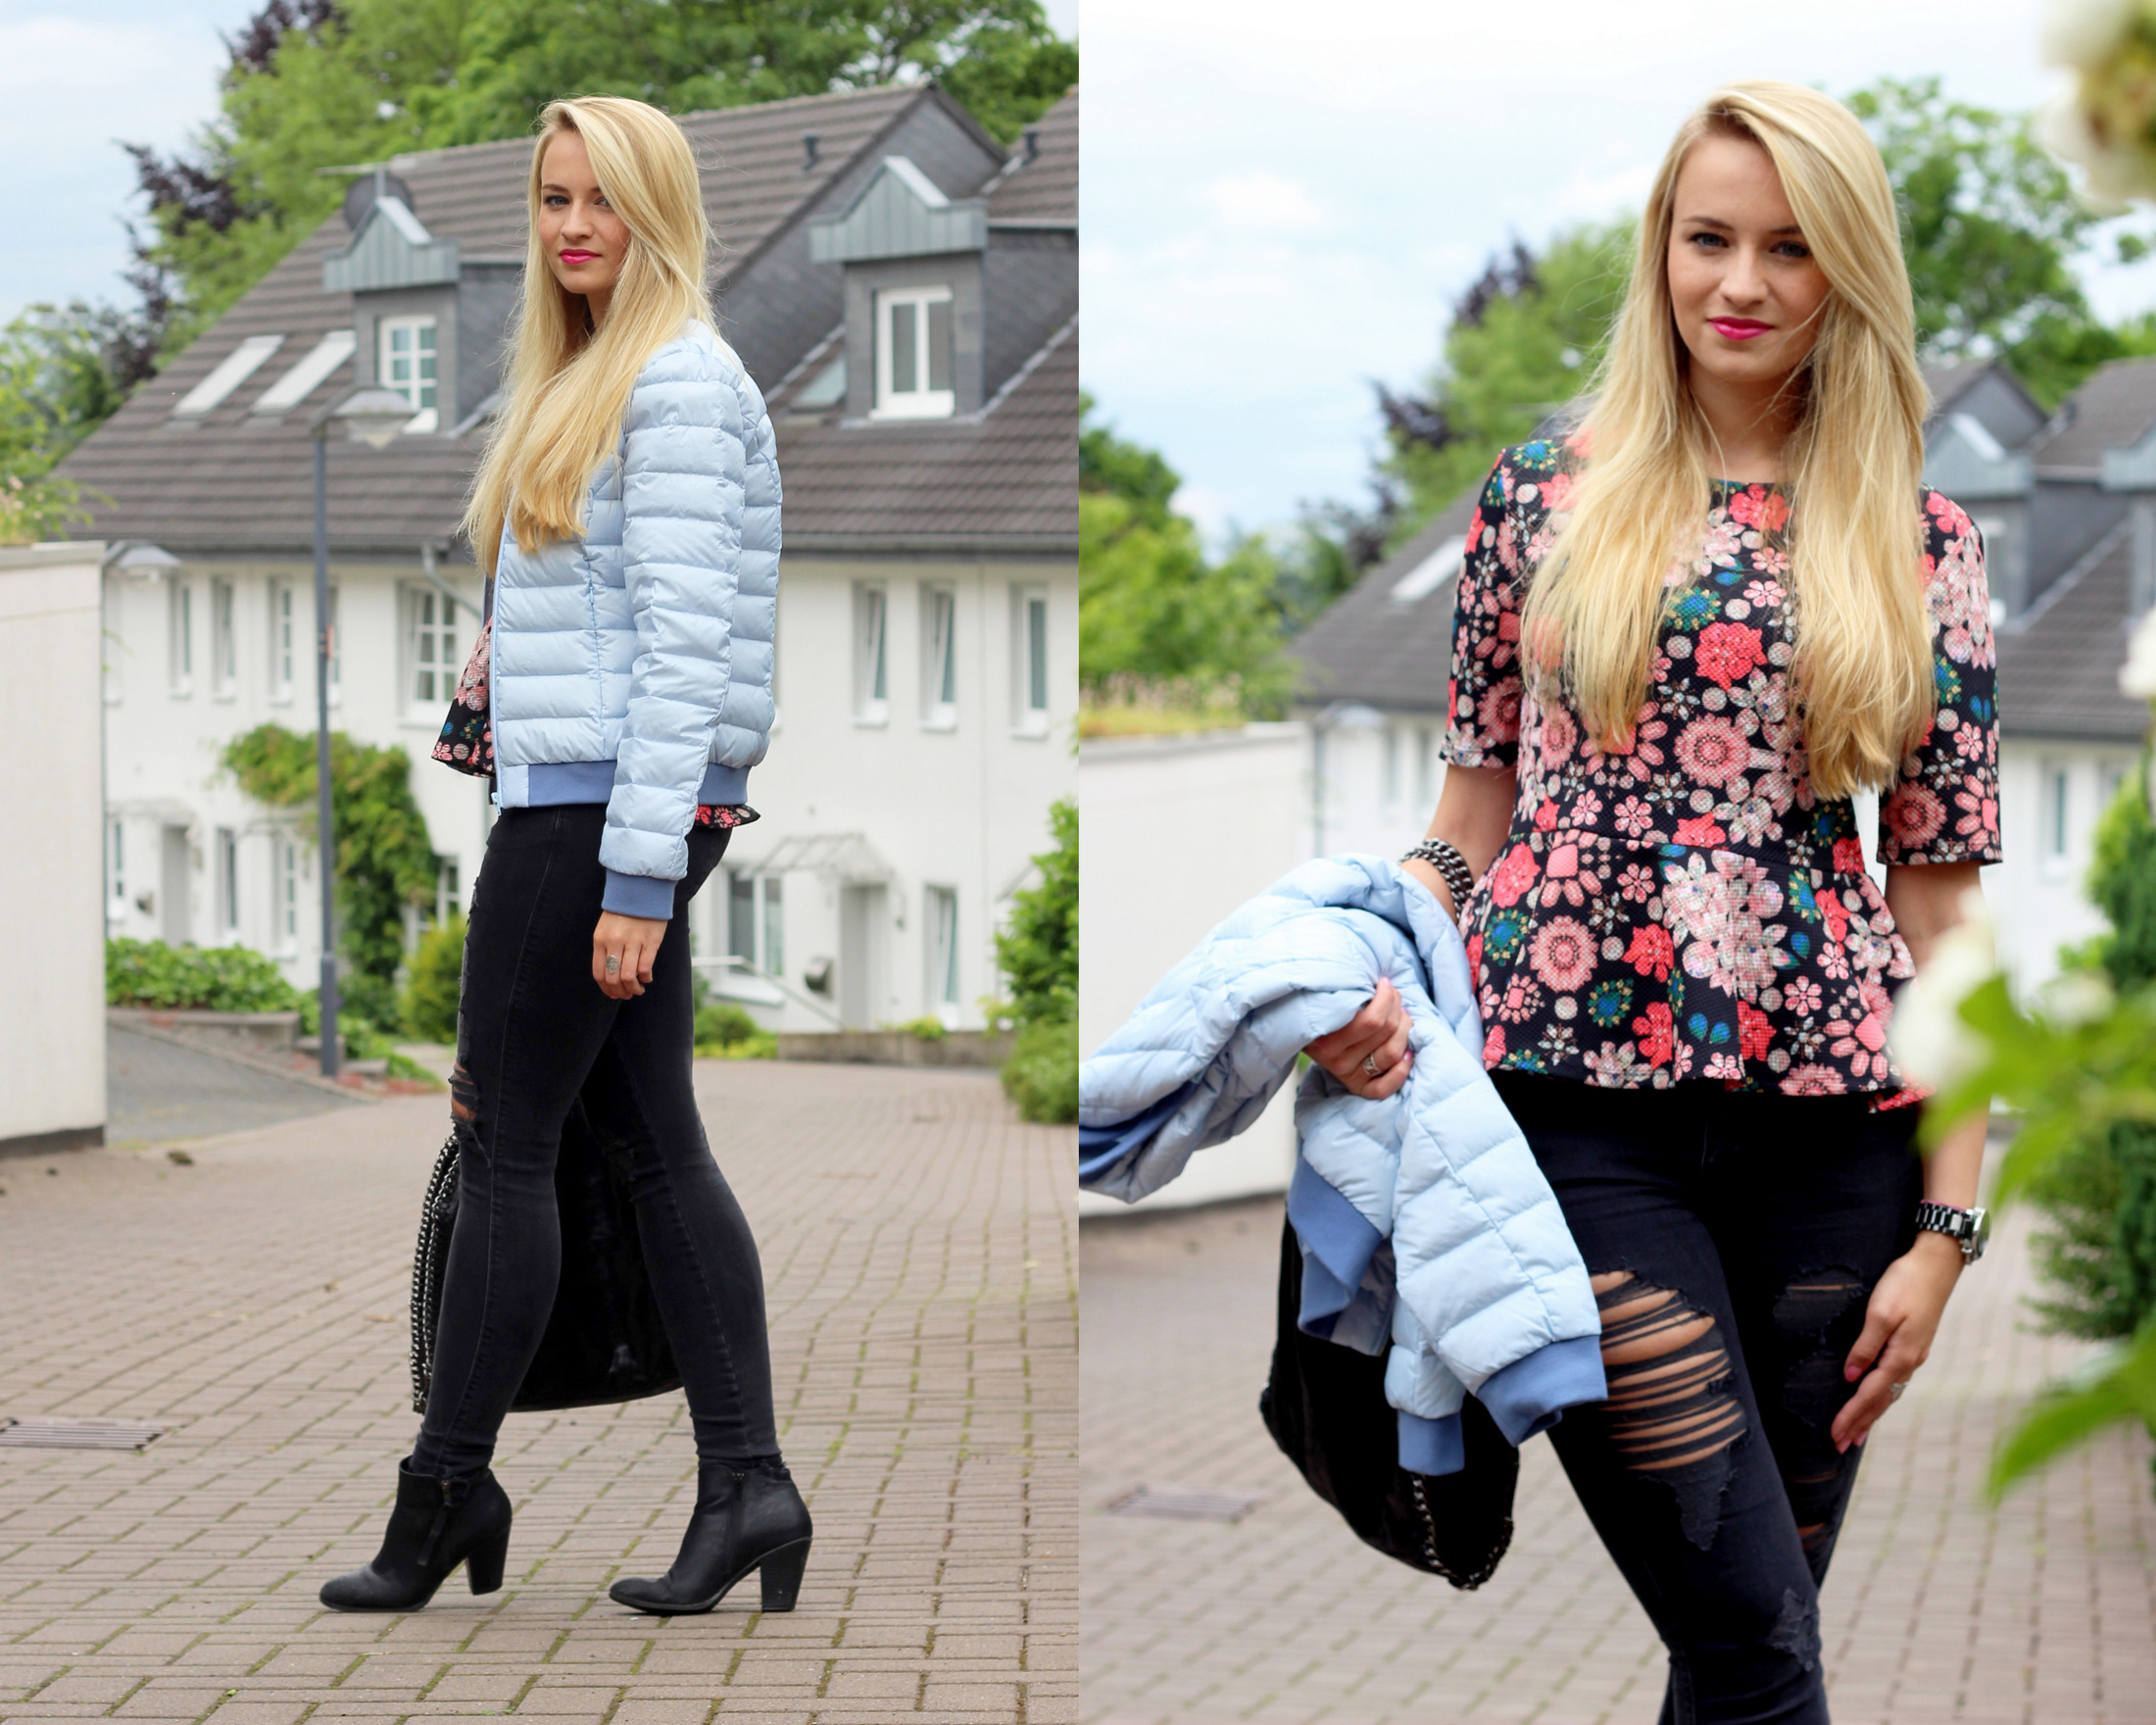 lightweight-jacket-peplum-shirt-flowers-skinny-jeans-ripped-destroyed-jeans (1)